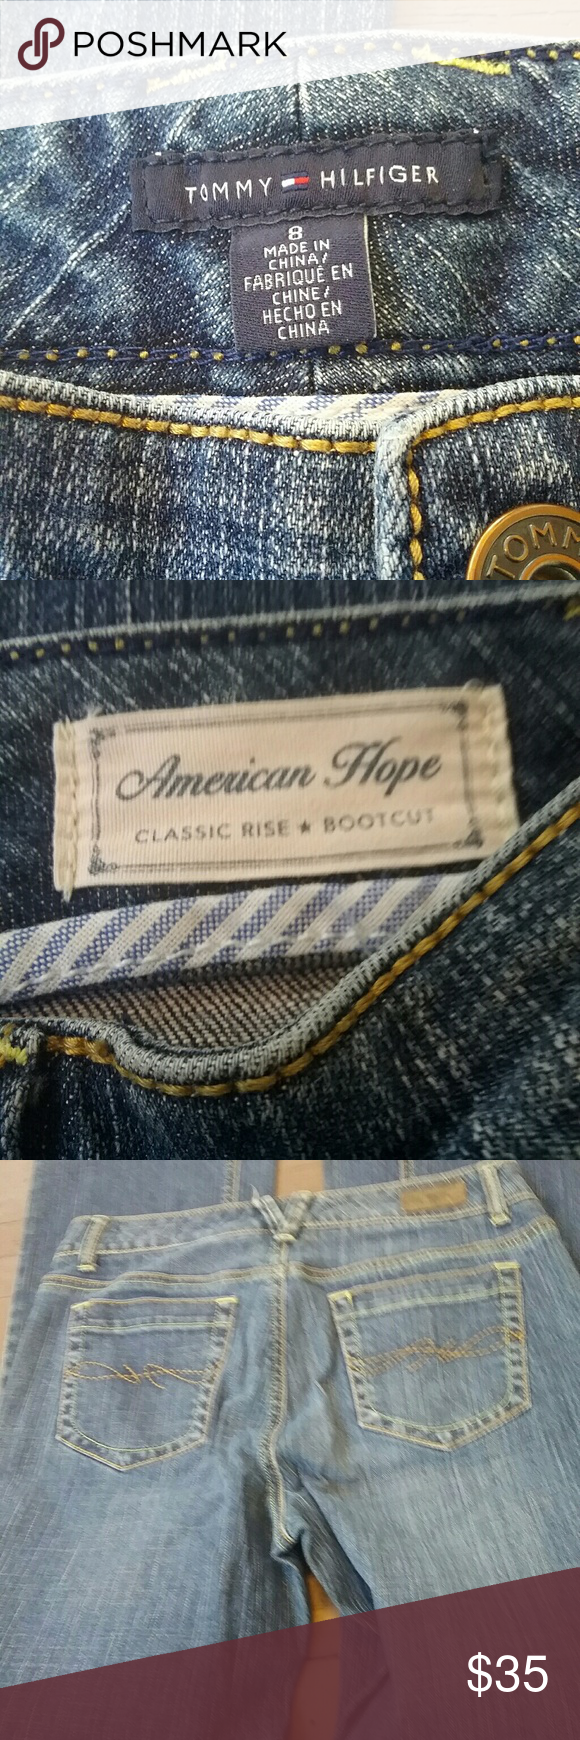 Tommy Hilfiger boot cut jeans Like new condition. Fits true to size Tommy Hilfiger Jeans Boot Cut